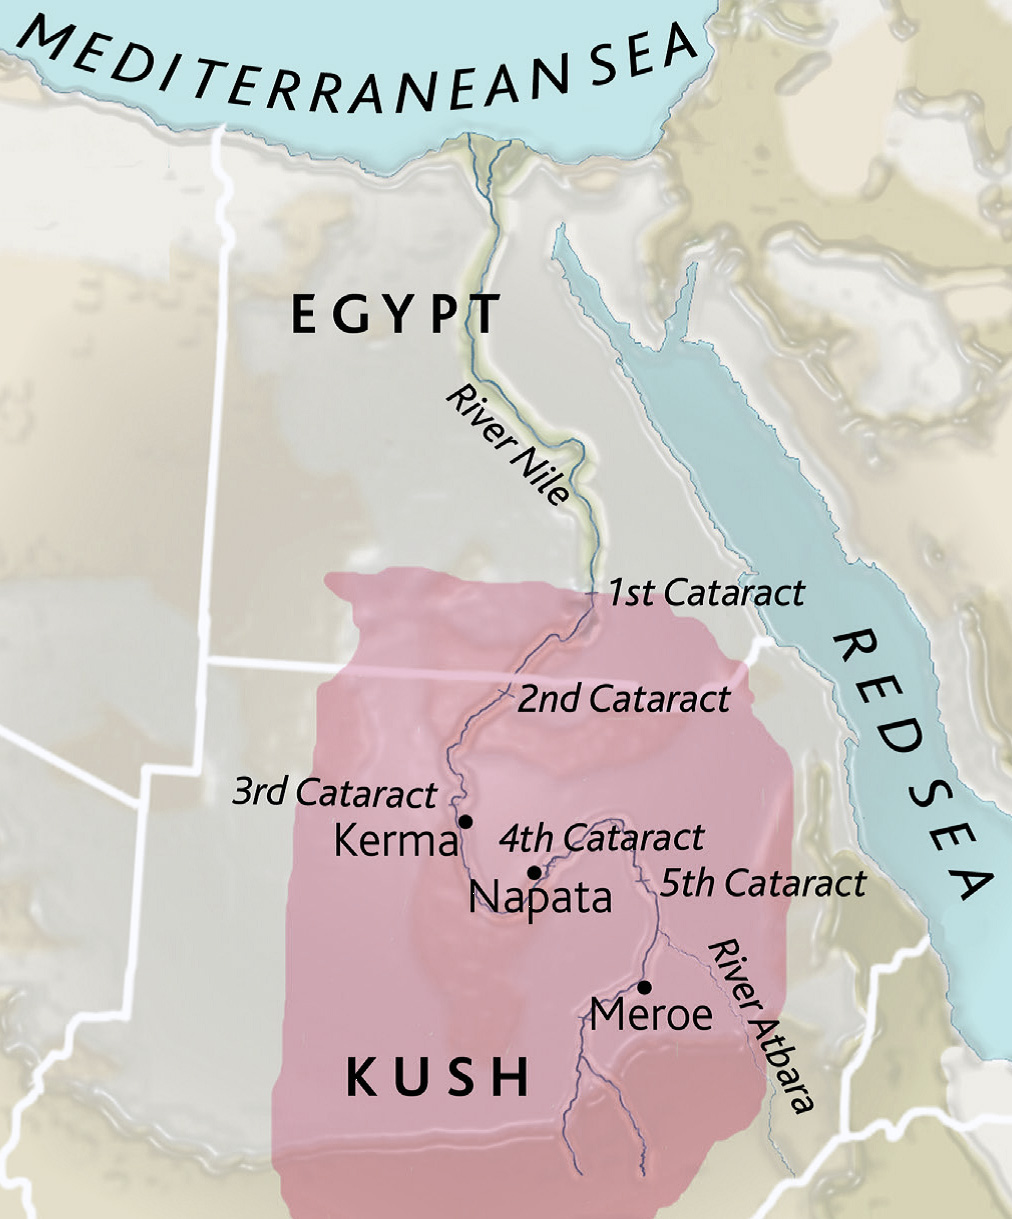 Kingdom of Kush map